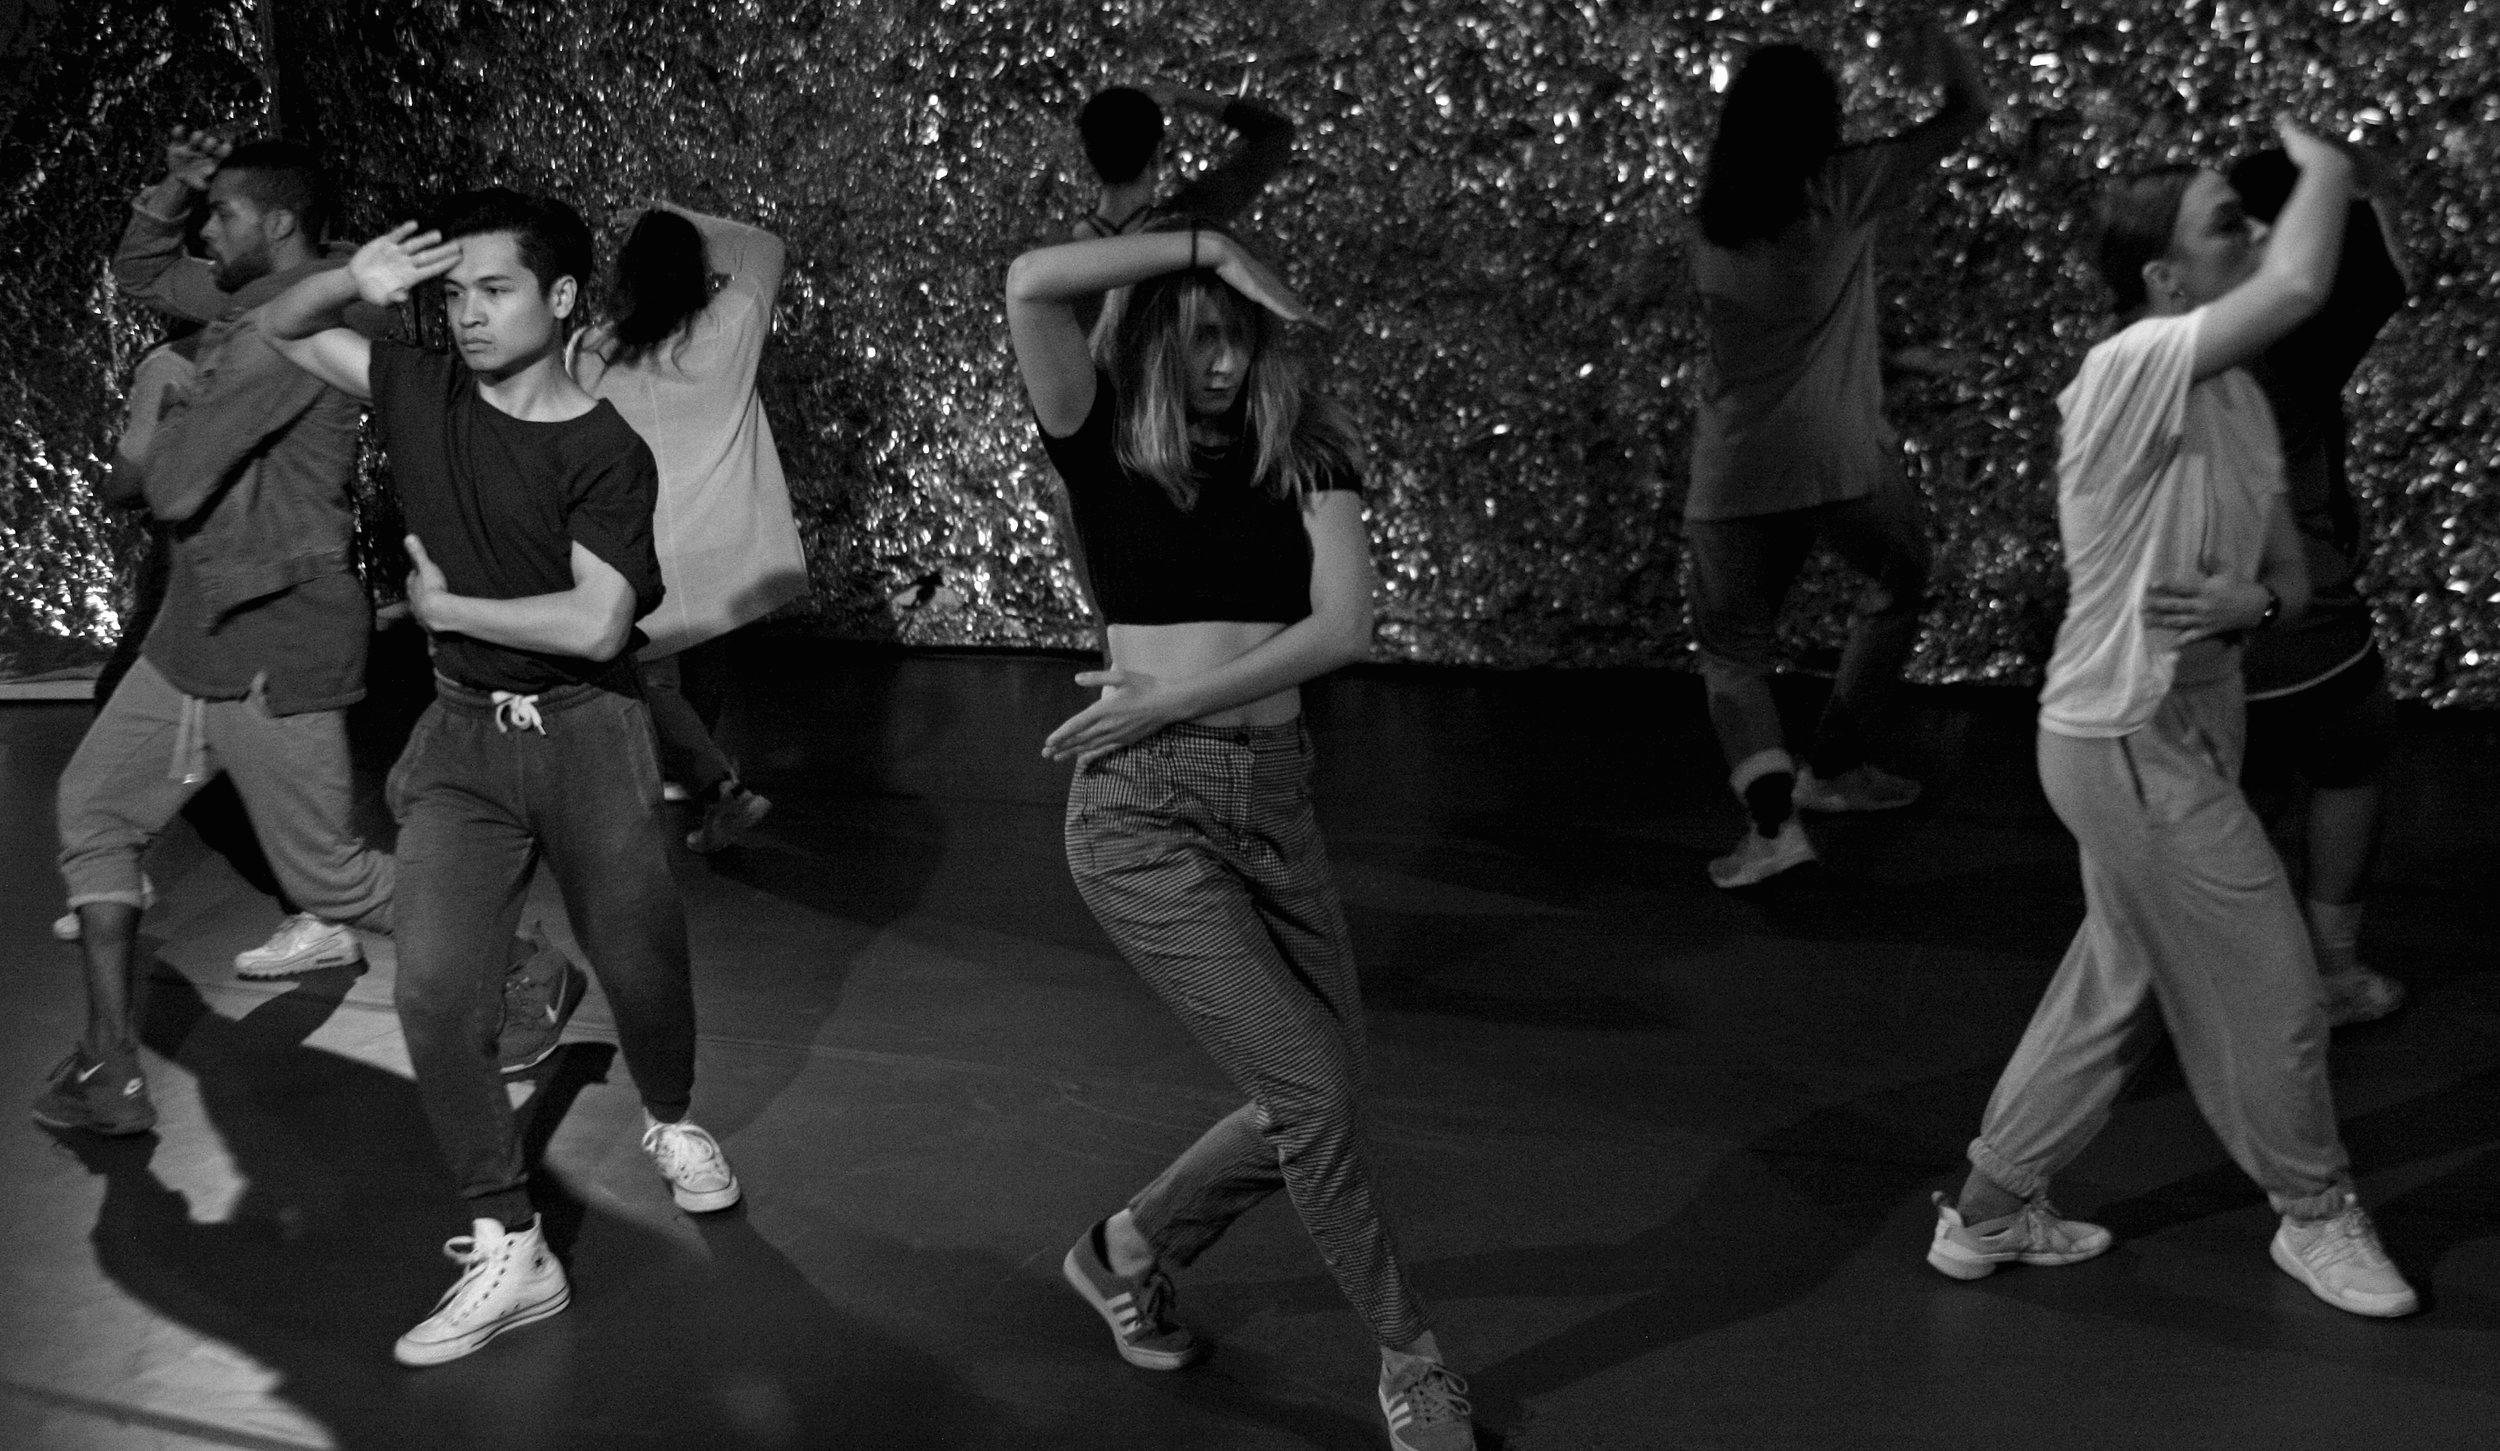 untitled studies on tension   (2018) Photo credit: Deanna Wallach for Brain Love 2018 Choreographed by Sarah Esser Performed by Jimmy Crowell II, Jason Diaz, Sarah Esser, Amy Gatewood, Youran Lee, Breanna Myers, Lea Ono, Kyra Price, Jillian Roberts, & Dana Wiener Music by J. Cole, LION BABE, Miguel, & Lolo Zouai | Edited by Sam Lee